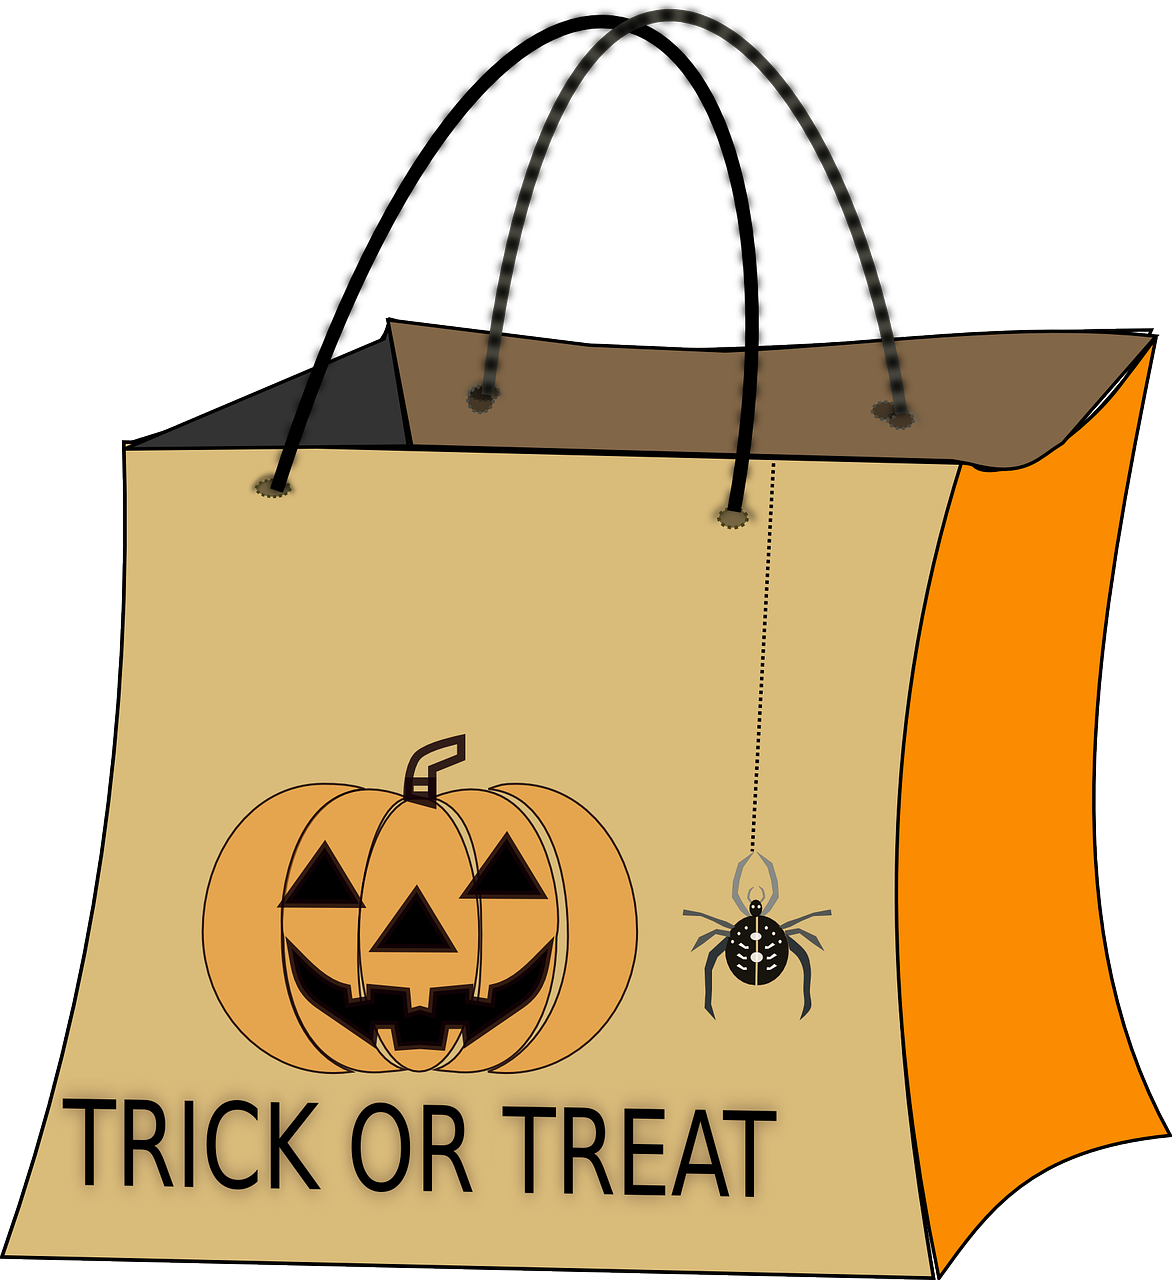 Peanuts clipart trick or treat. Home cooked handmade halloween